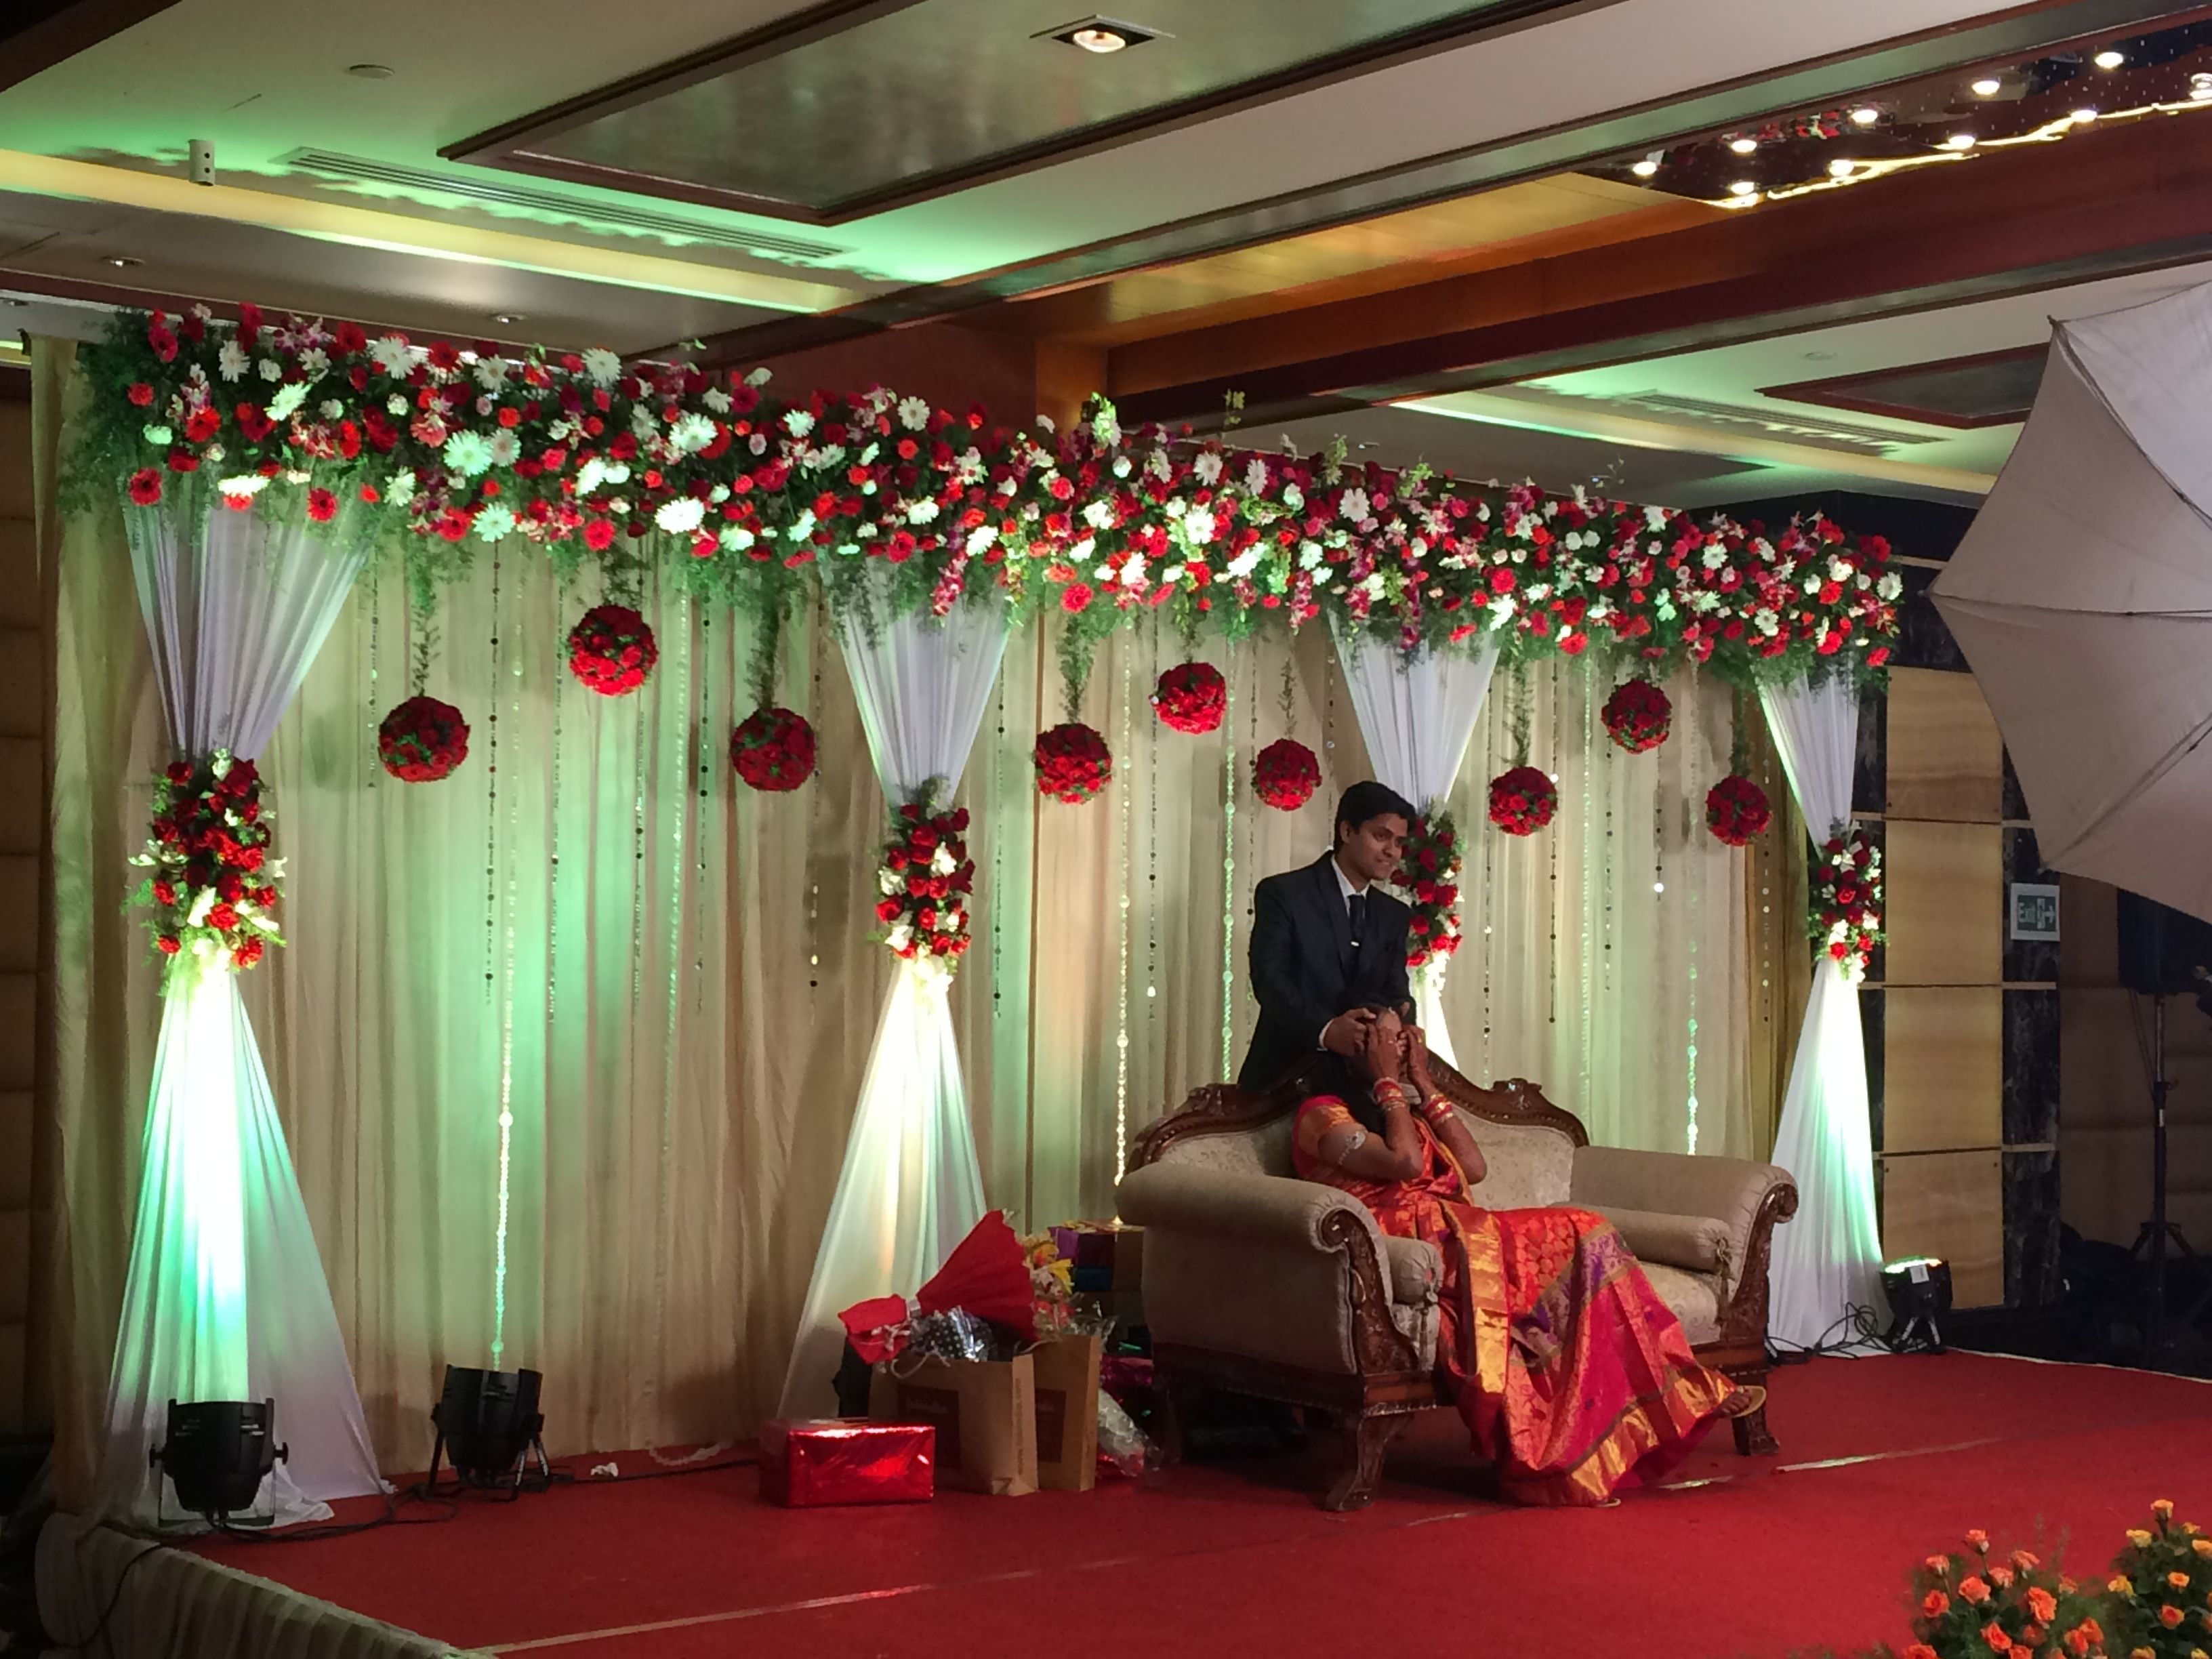 wedding stage decoration pics%0A floral and  curtainlights backdrop asianwedding decoration   Wedding  Inspiration   Pinterest   Curtain lights  Backdrops and Decoration